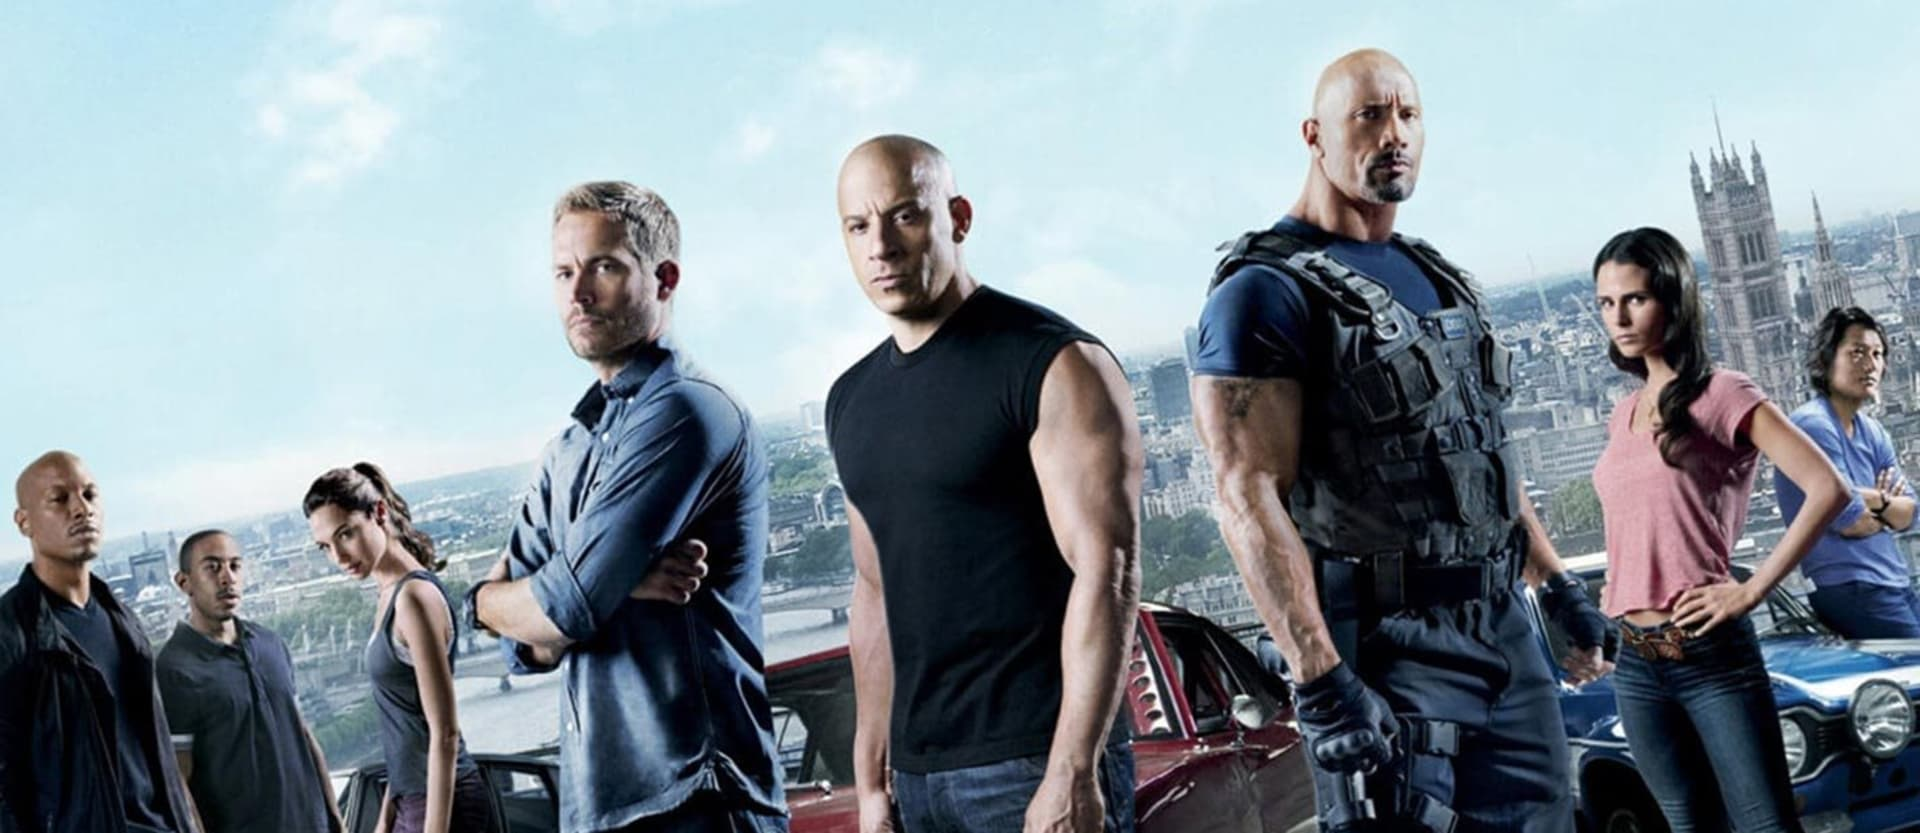 The Fast and the Furious films ranked